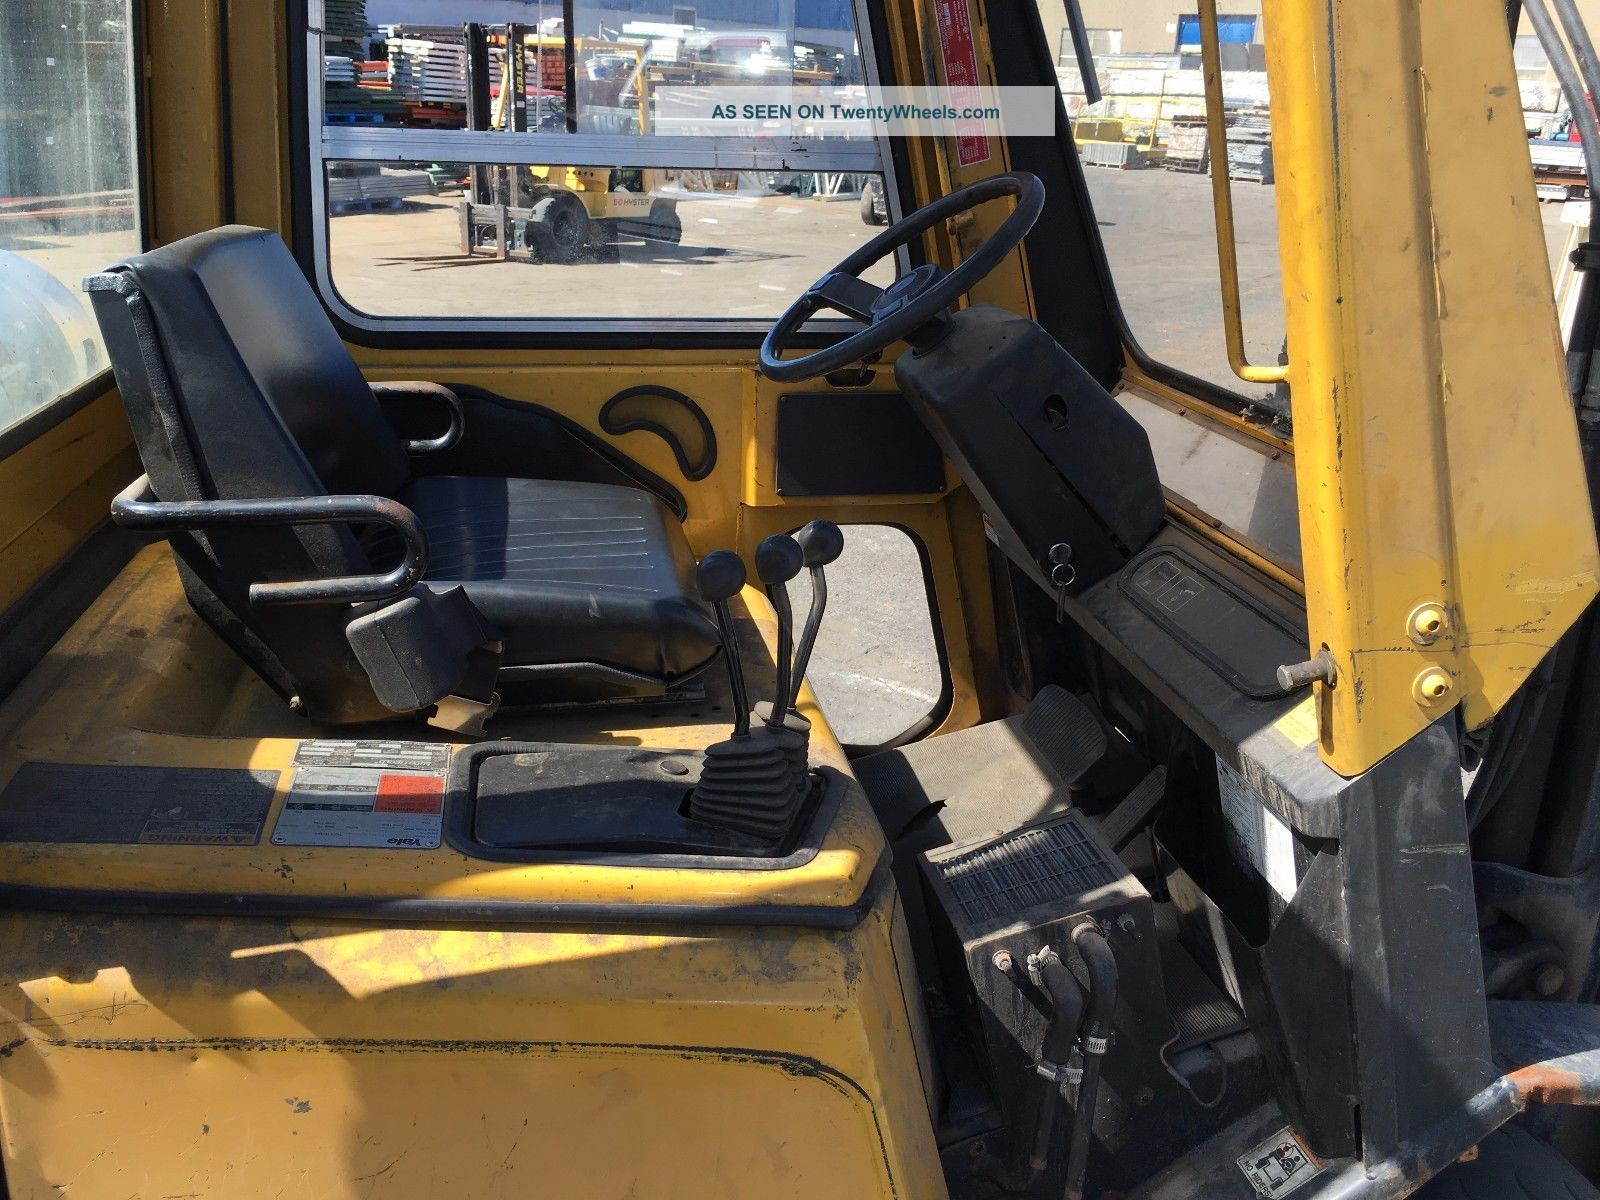 Cap pneumatic tire lp forklift 42 quot forks 10 lift height amp full cab